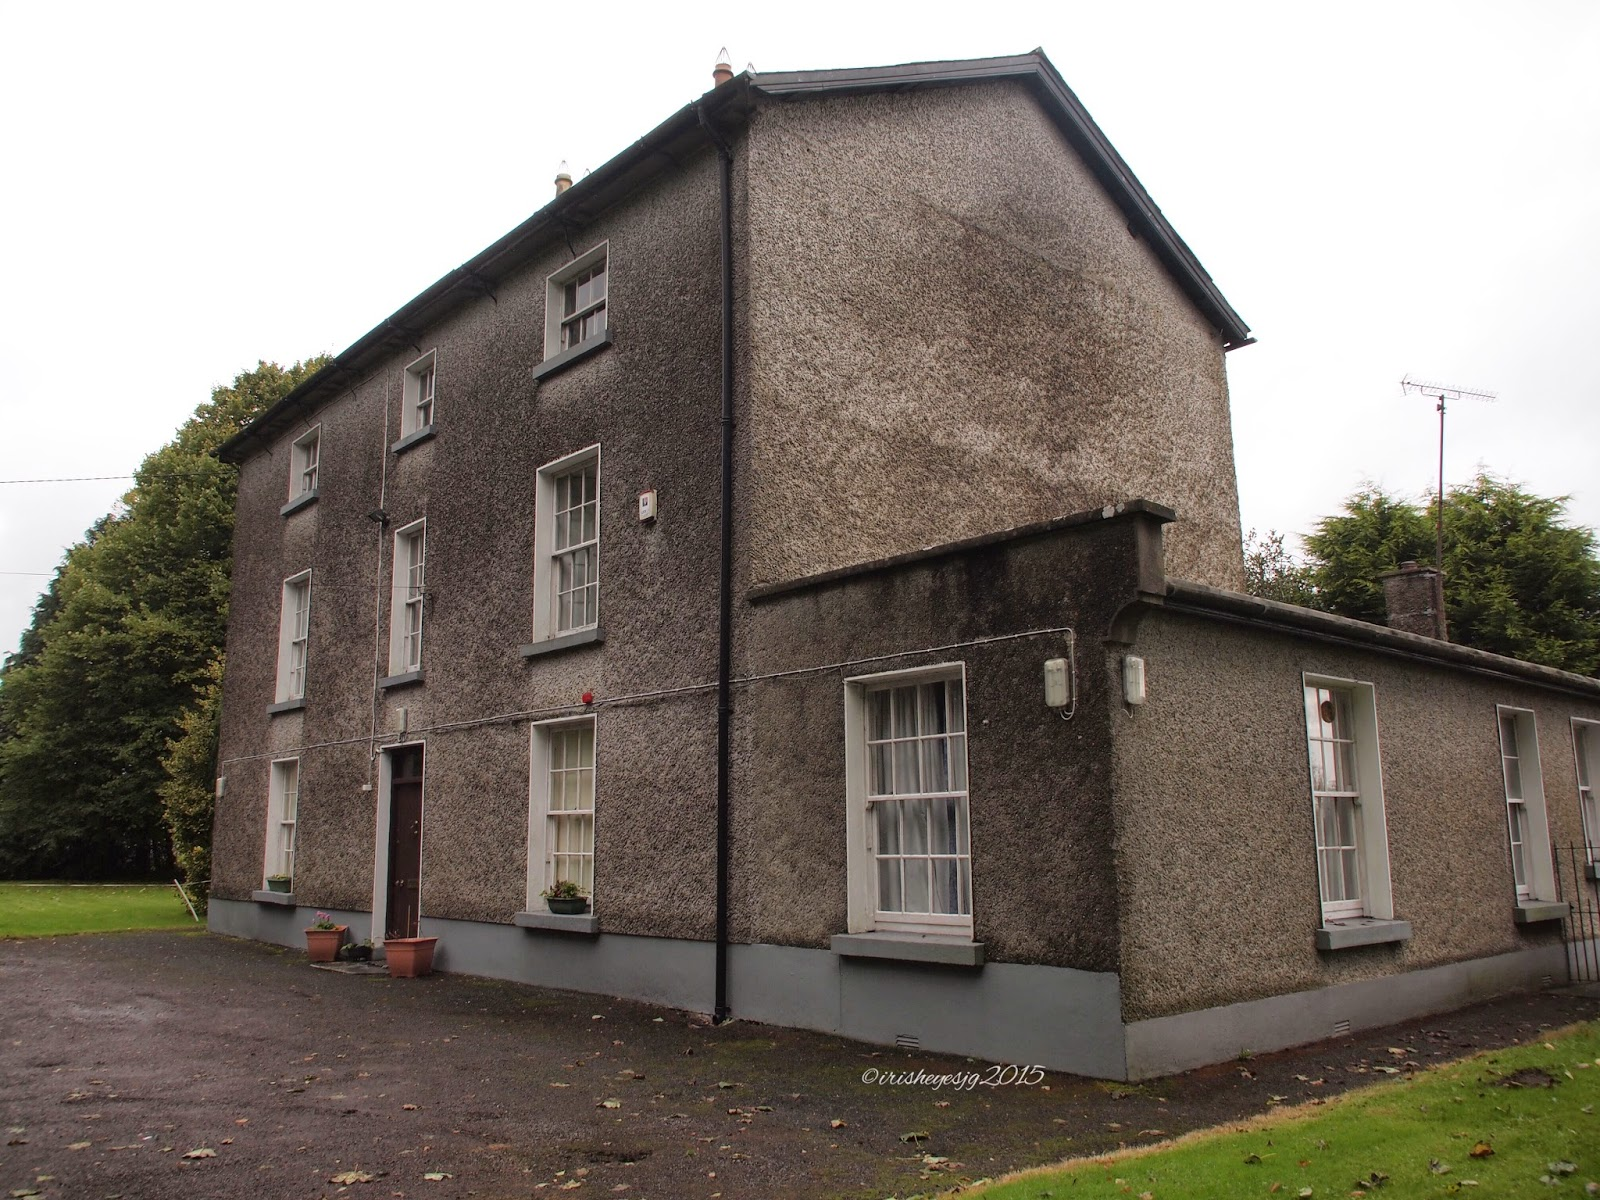 edgeworthstown singles 11 houses to rent in edgeworthstown from €400 / month  each with a set of bunk beds and a single bed to rent there is central heating throughout and you will.